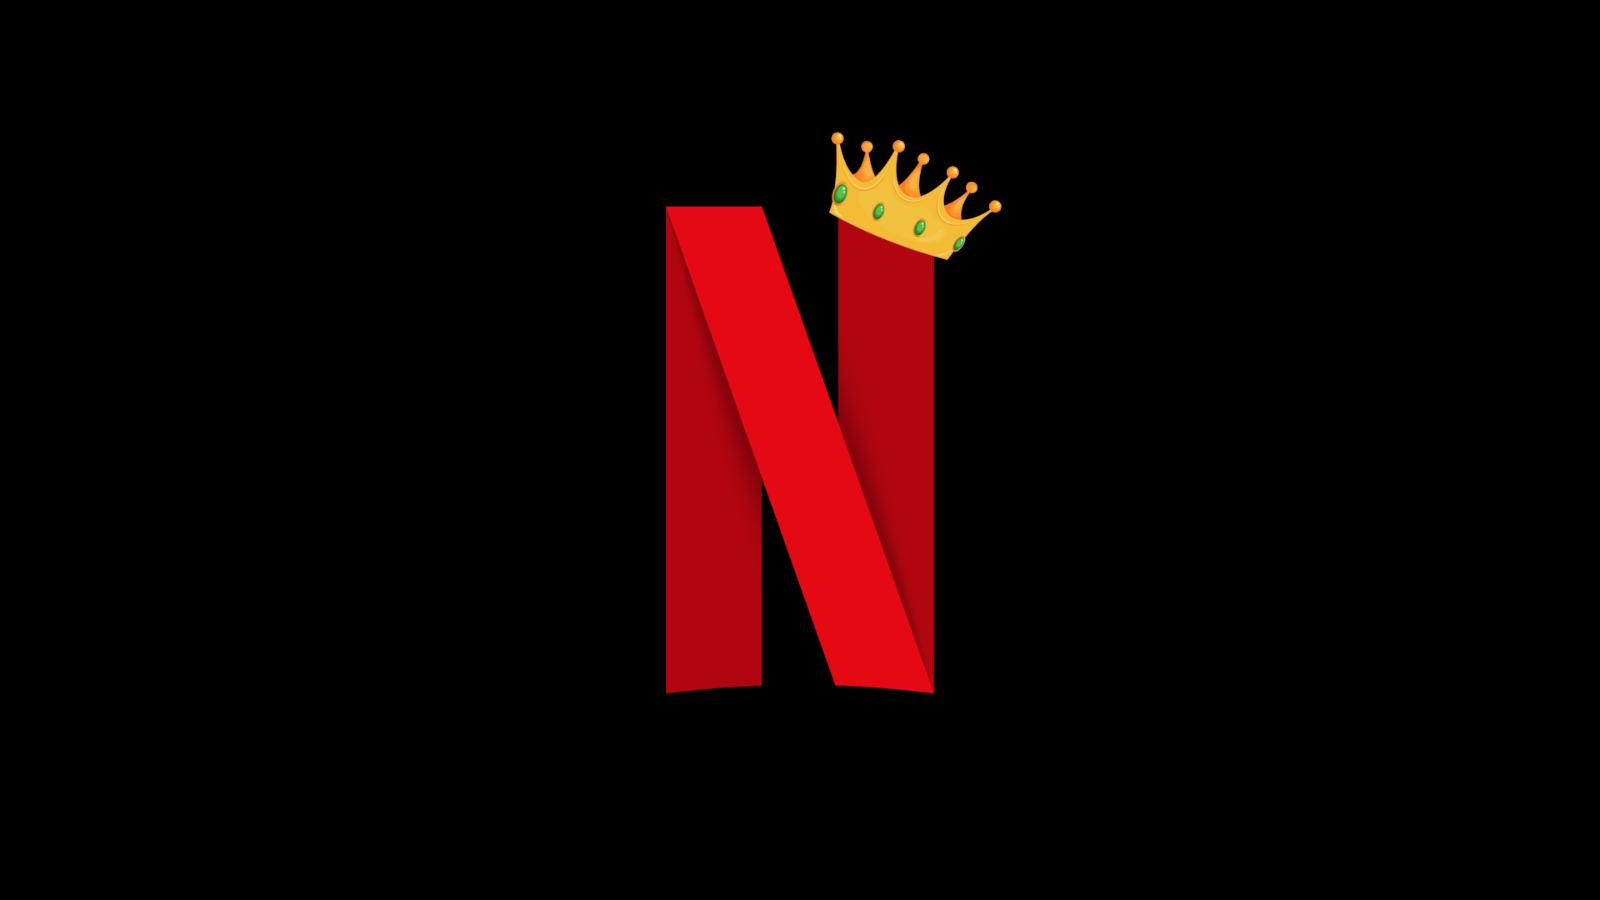 Netflix now has more than 137 million subscribers - CNN